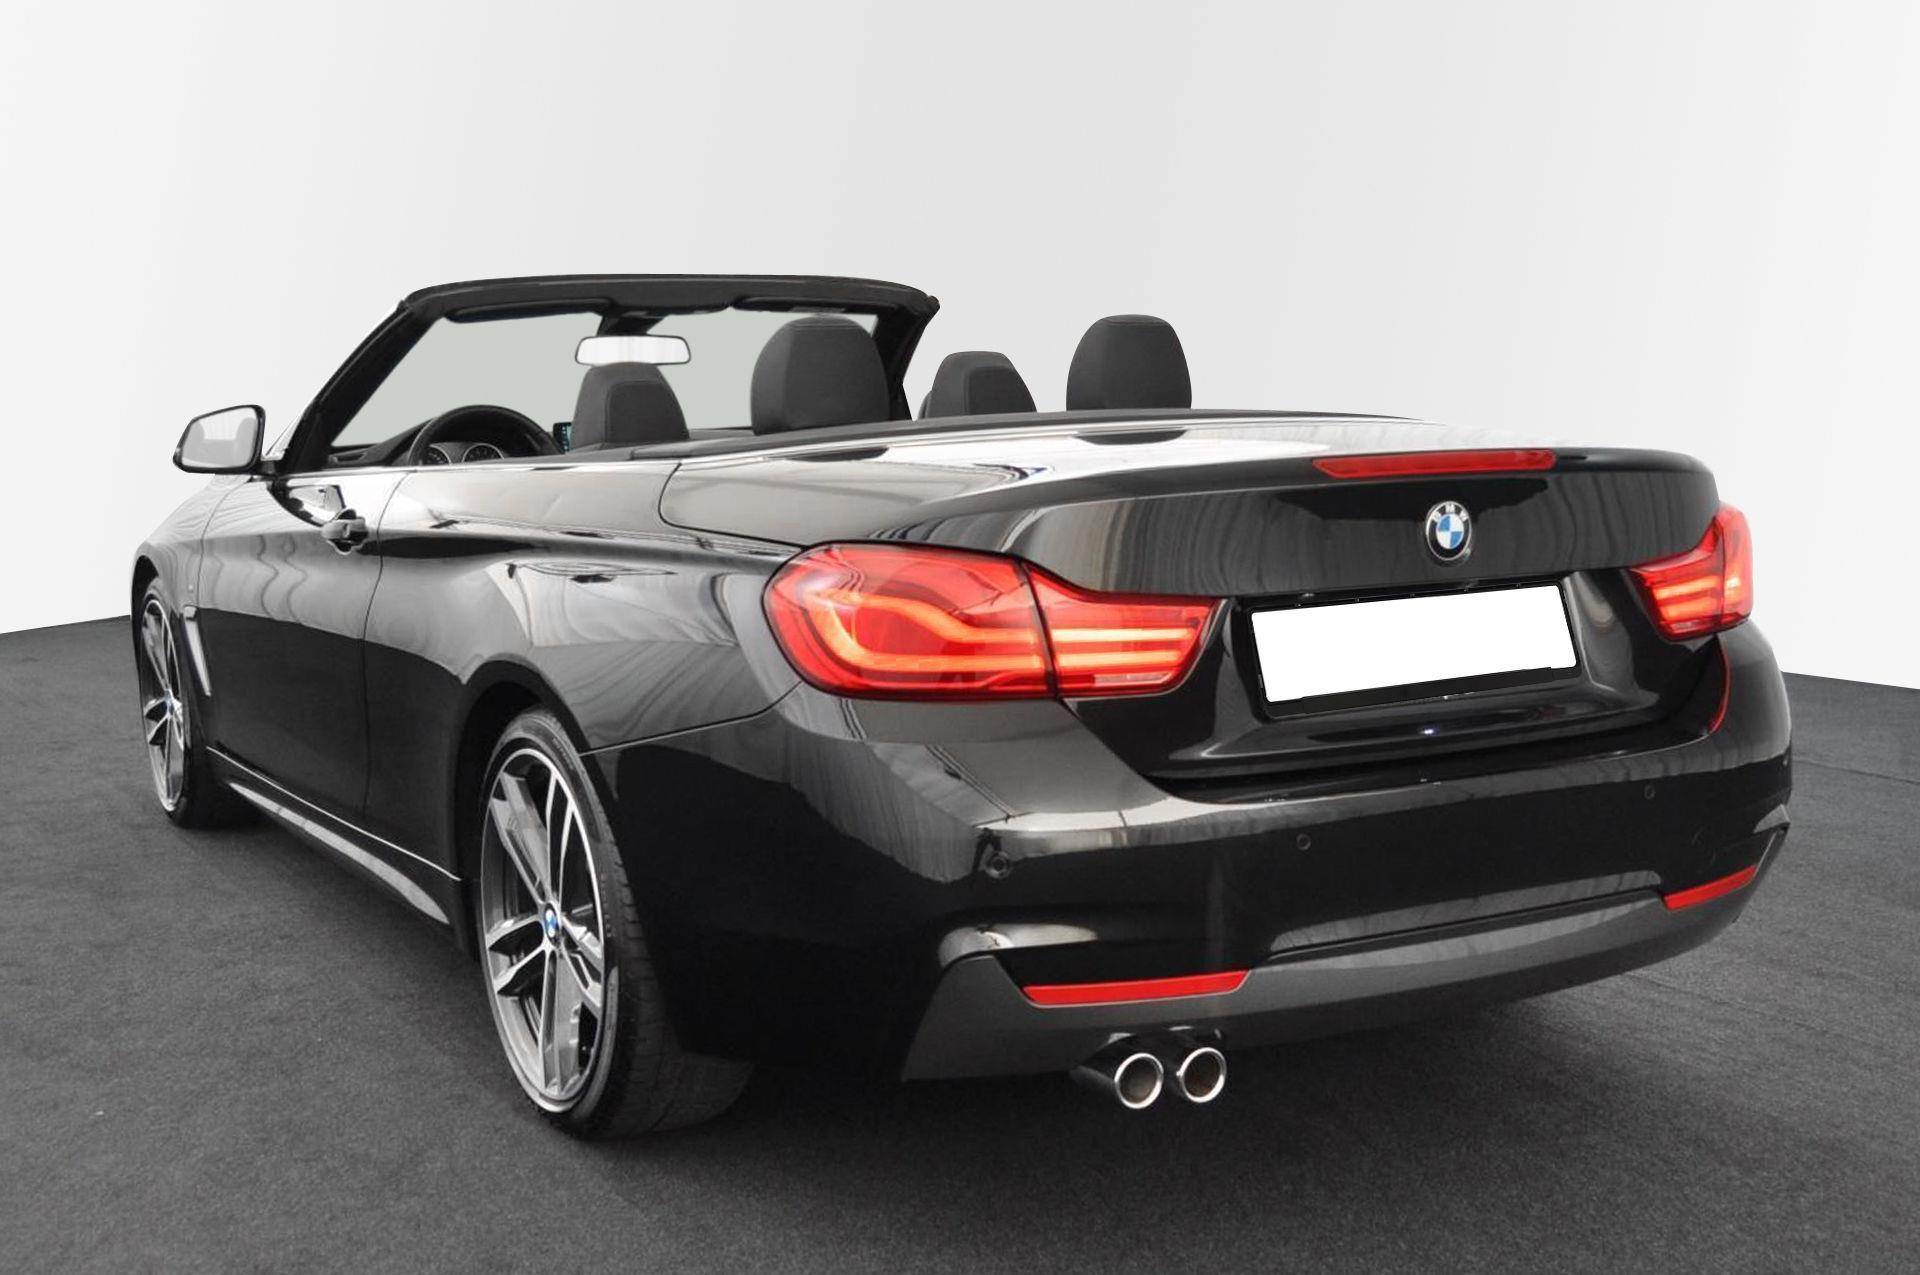 Coches de Segunda Mano BMW 420iA Cabrio M-Sport LED/NAVI/H-UP/D-ASS/LHZ/19 0000007341